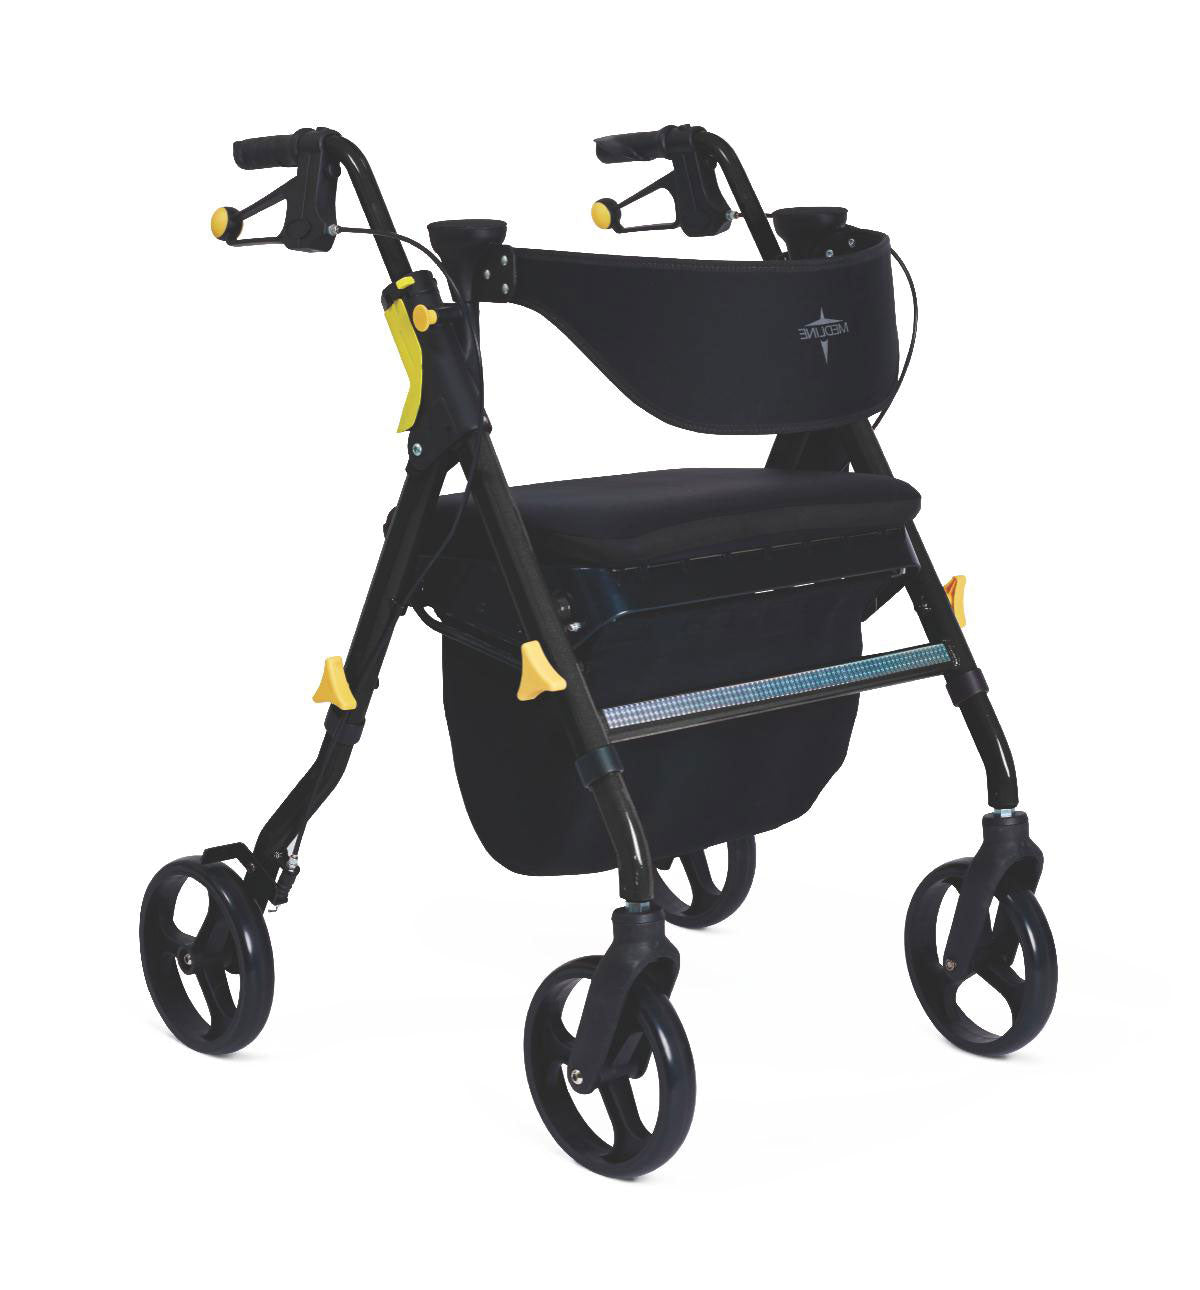 Medline Empower Deluxe Rollator - Silver